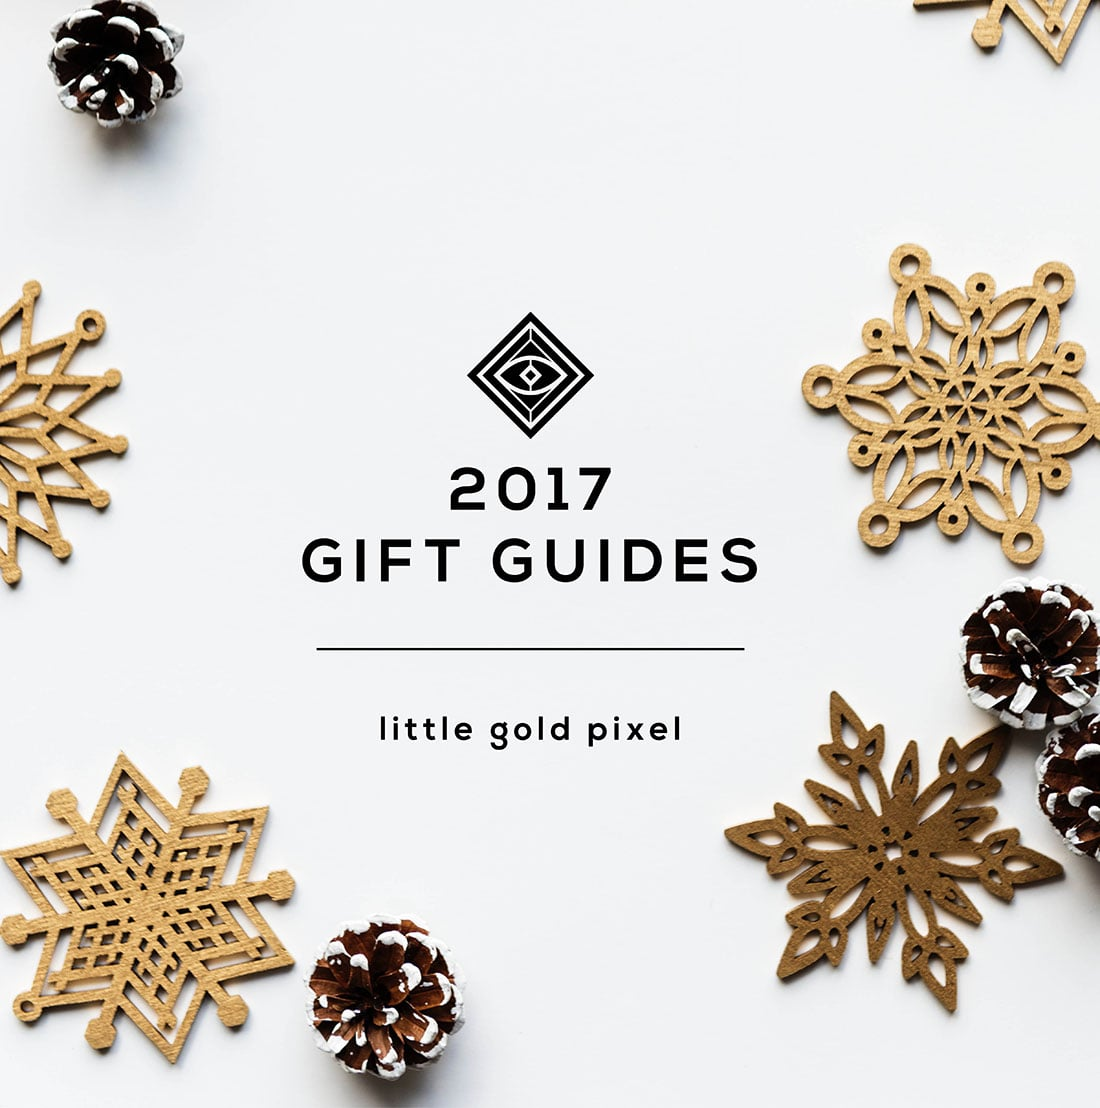 Little Gold Pixel's Retro Gift Guide: Here are 20 gifts perfect for the mid-century aficionados or nostalgia enthusiasts in your life. Grab one for yourself while you're at it!